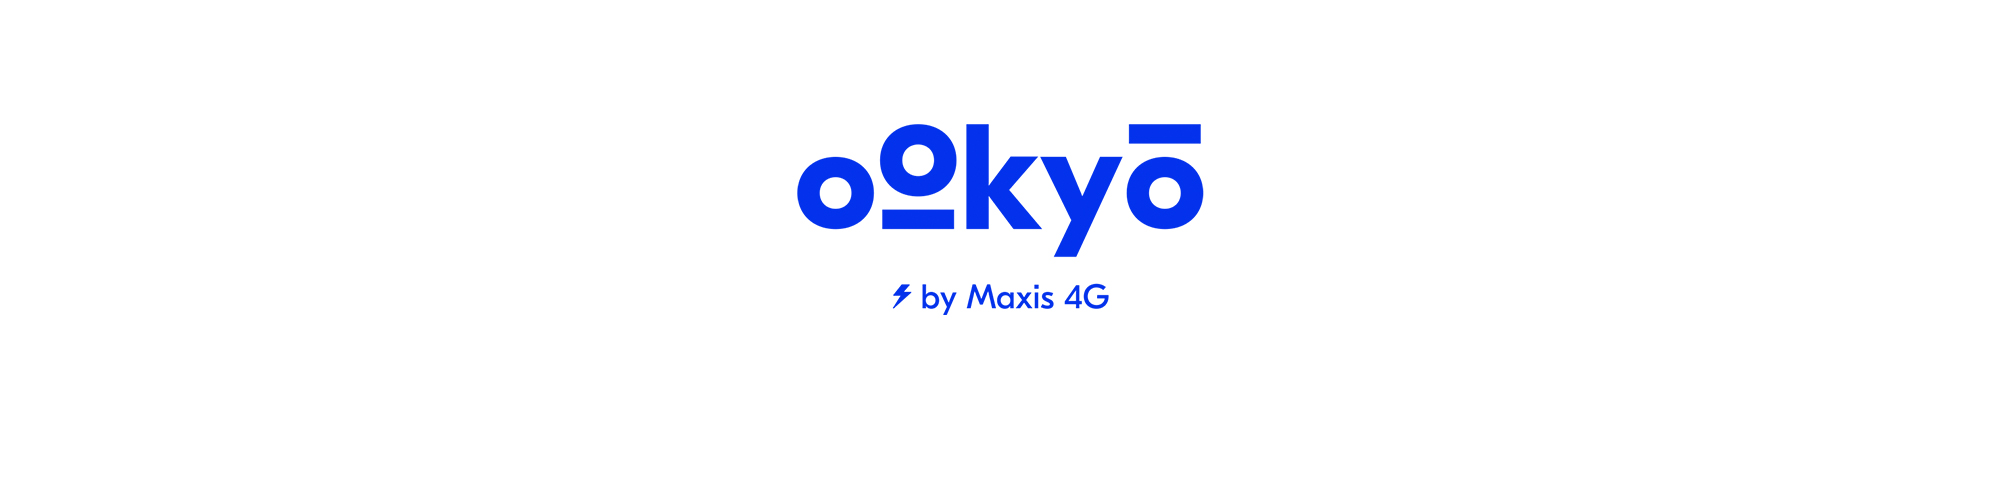 Ookyo by maxis 4g